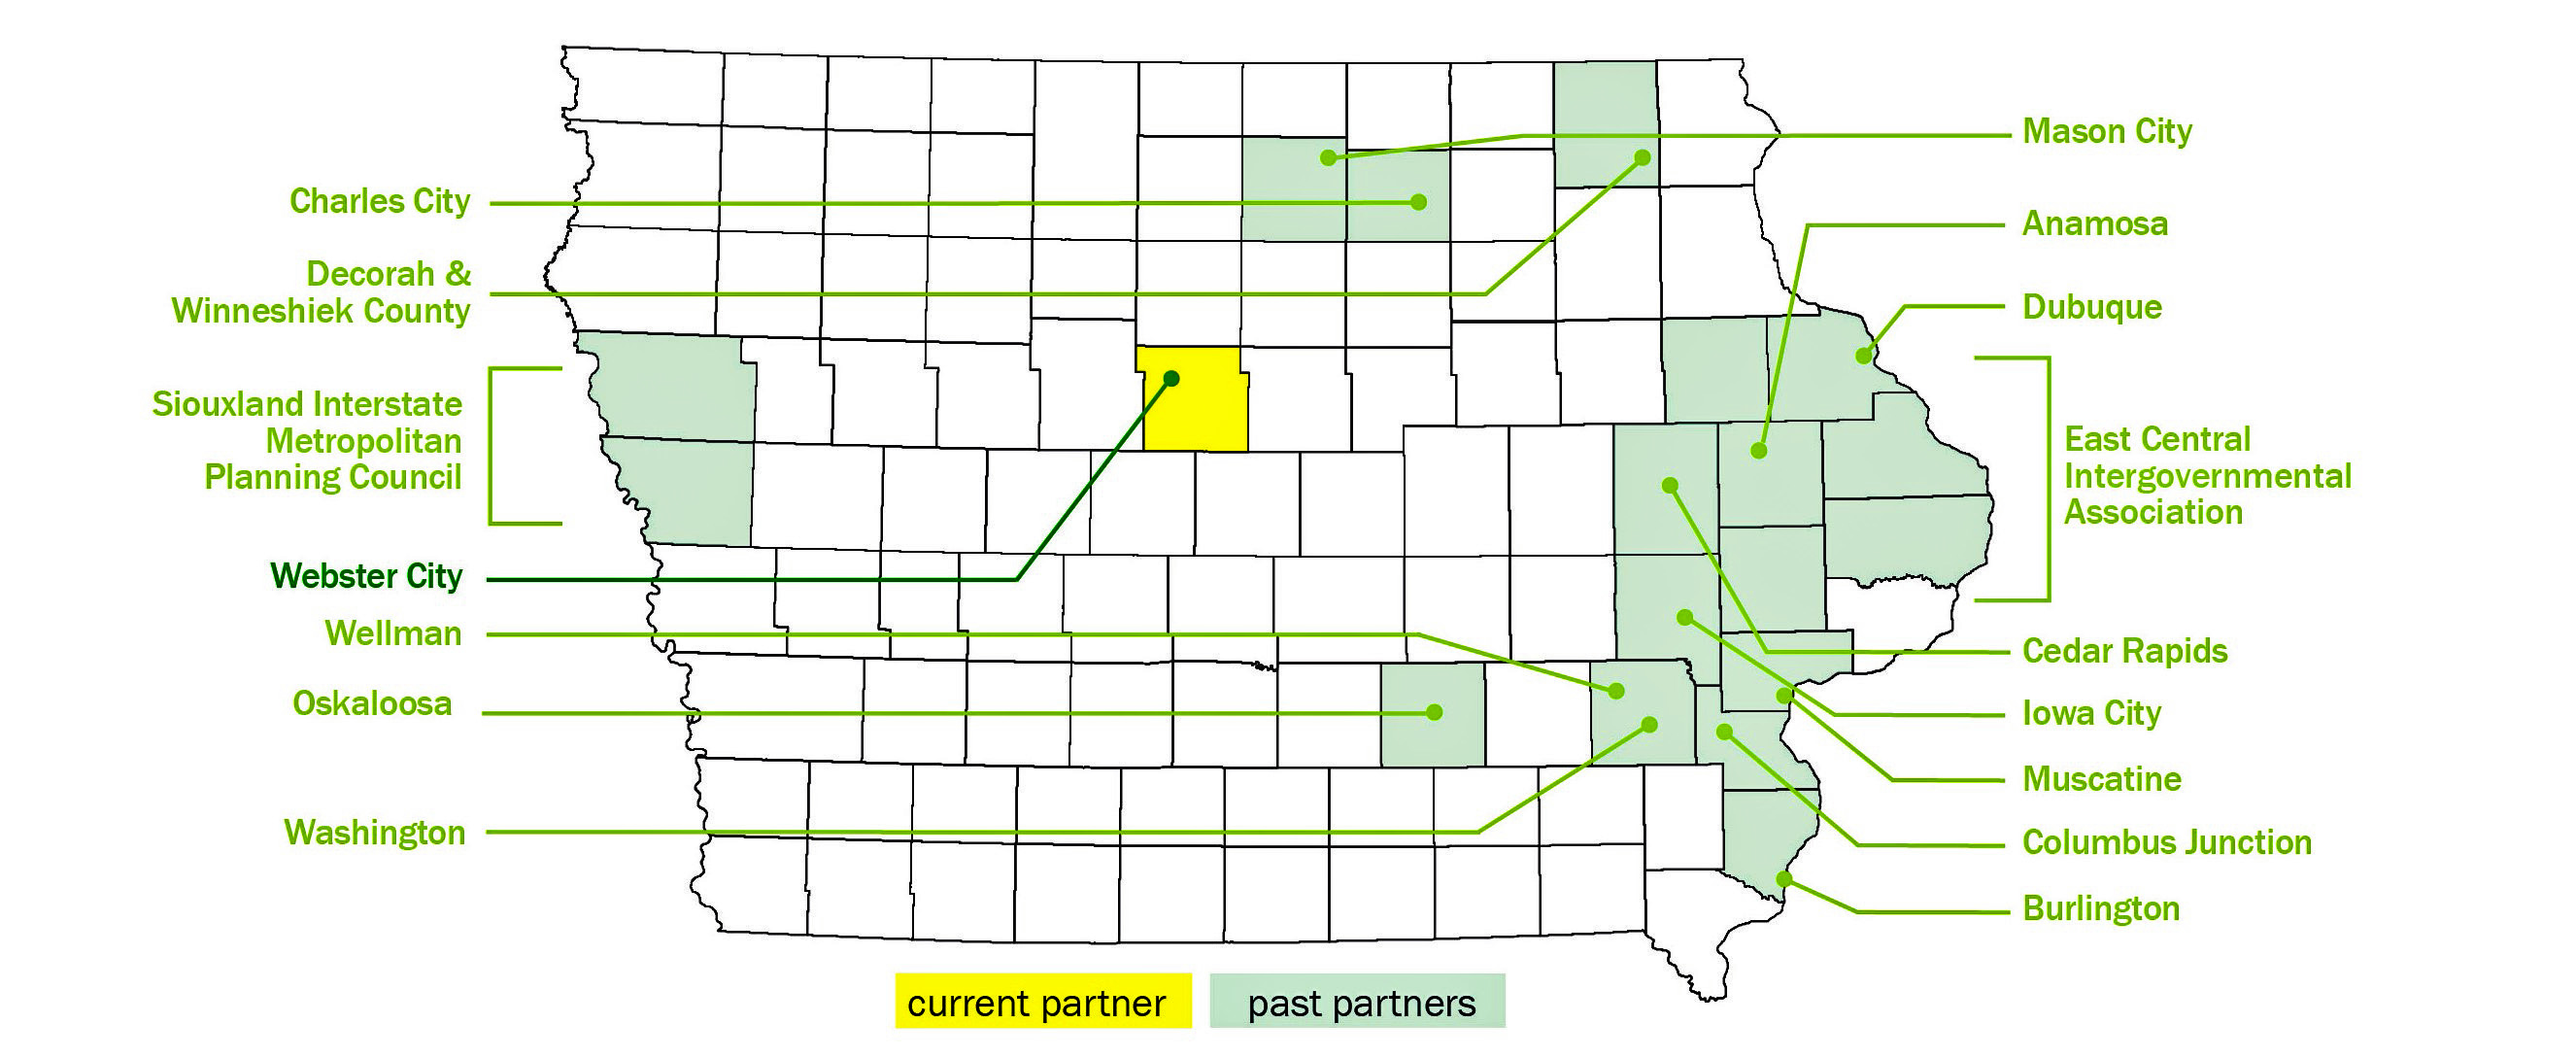 Map of Current and Past Partners